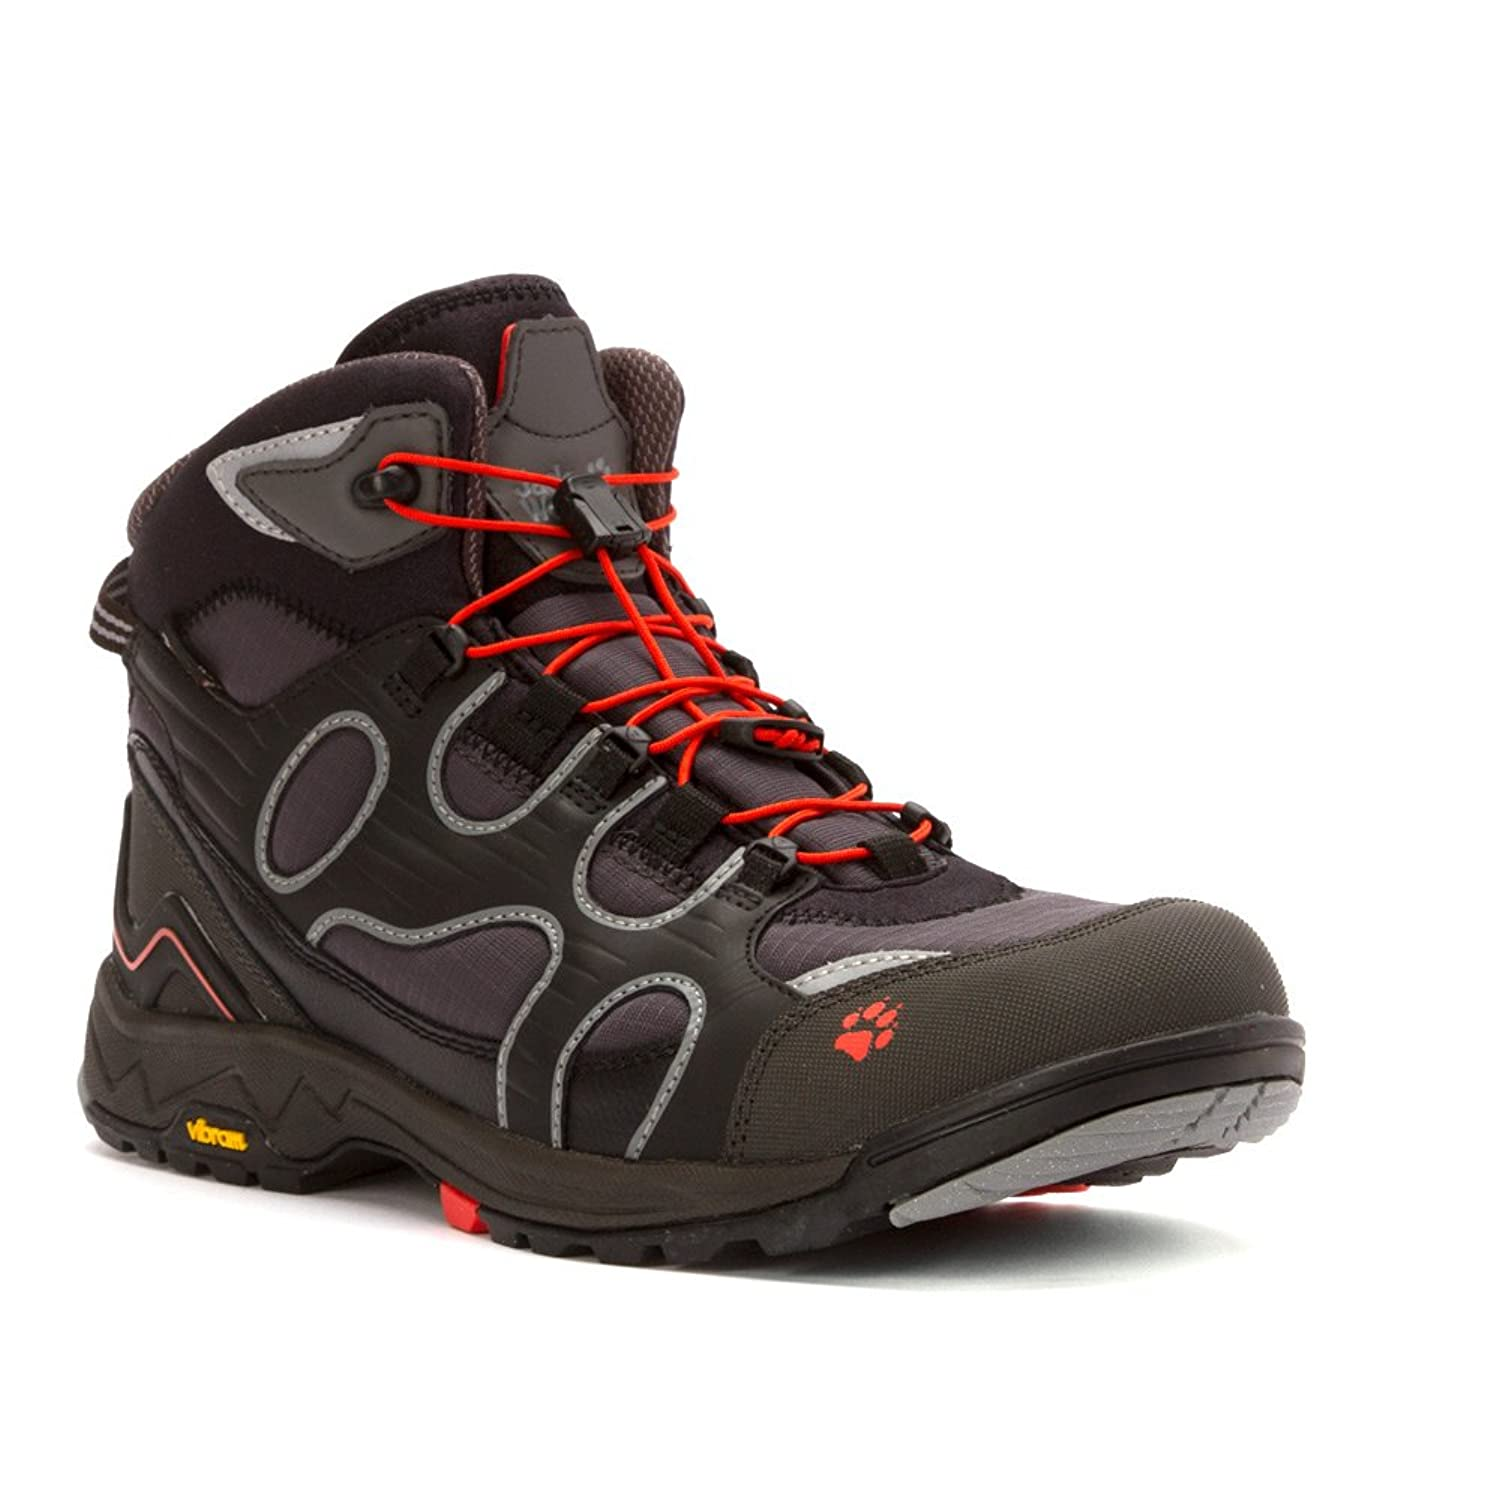 Jack Wolfskin M Crosswind WT Texapore MID - Dark Steel - EU 43 / UK 9 / US  10 - Mens sporty comfortable winter hiking shoe: Amazon.co.uk: Shoes & Bags